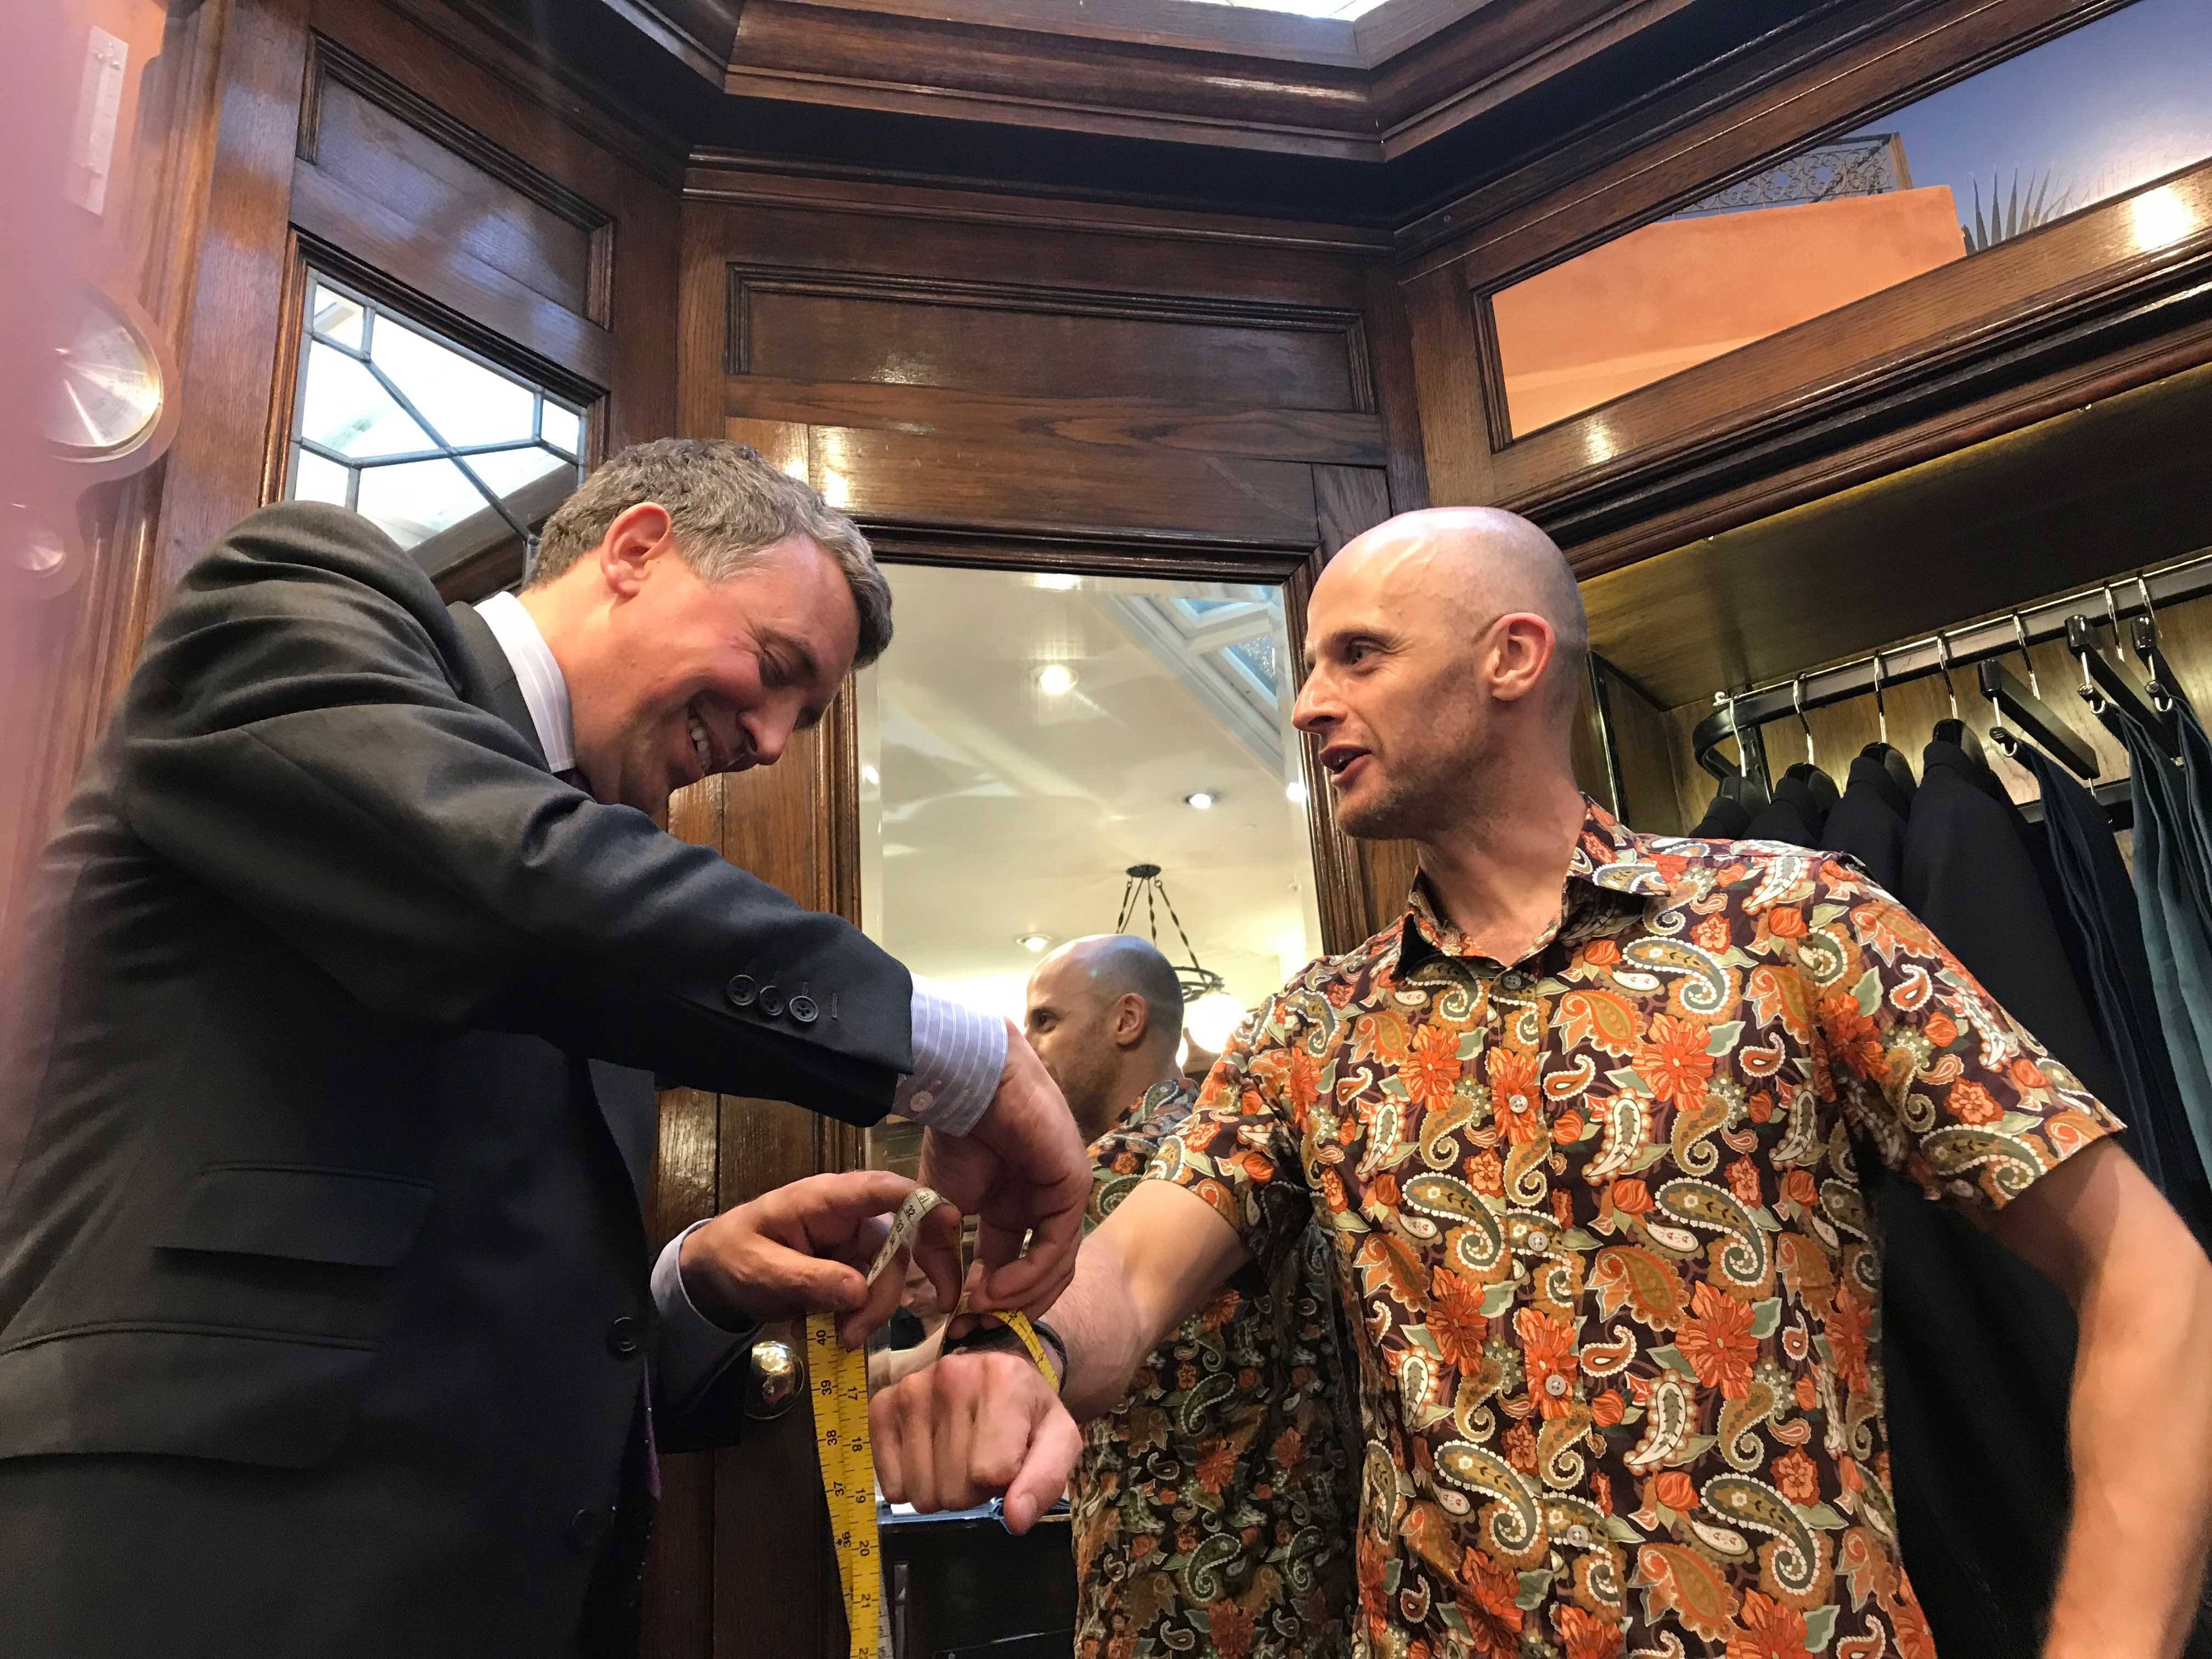 me measured shirt turnbull & asser